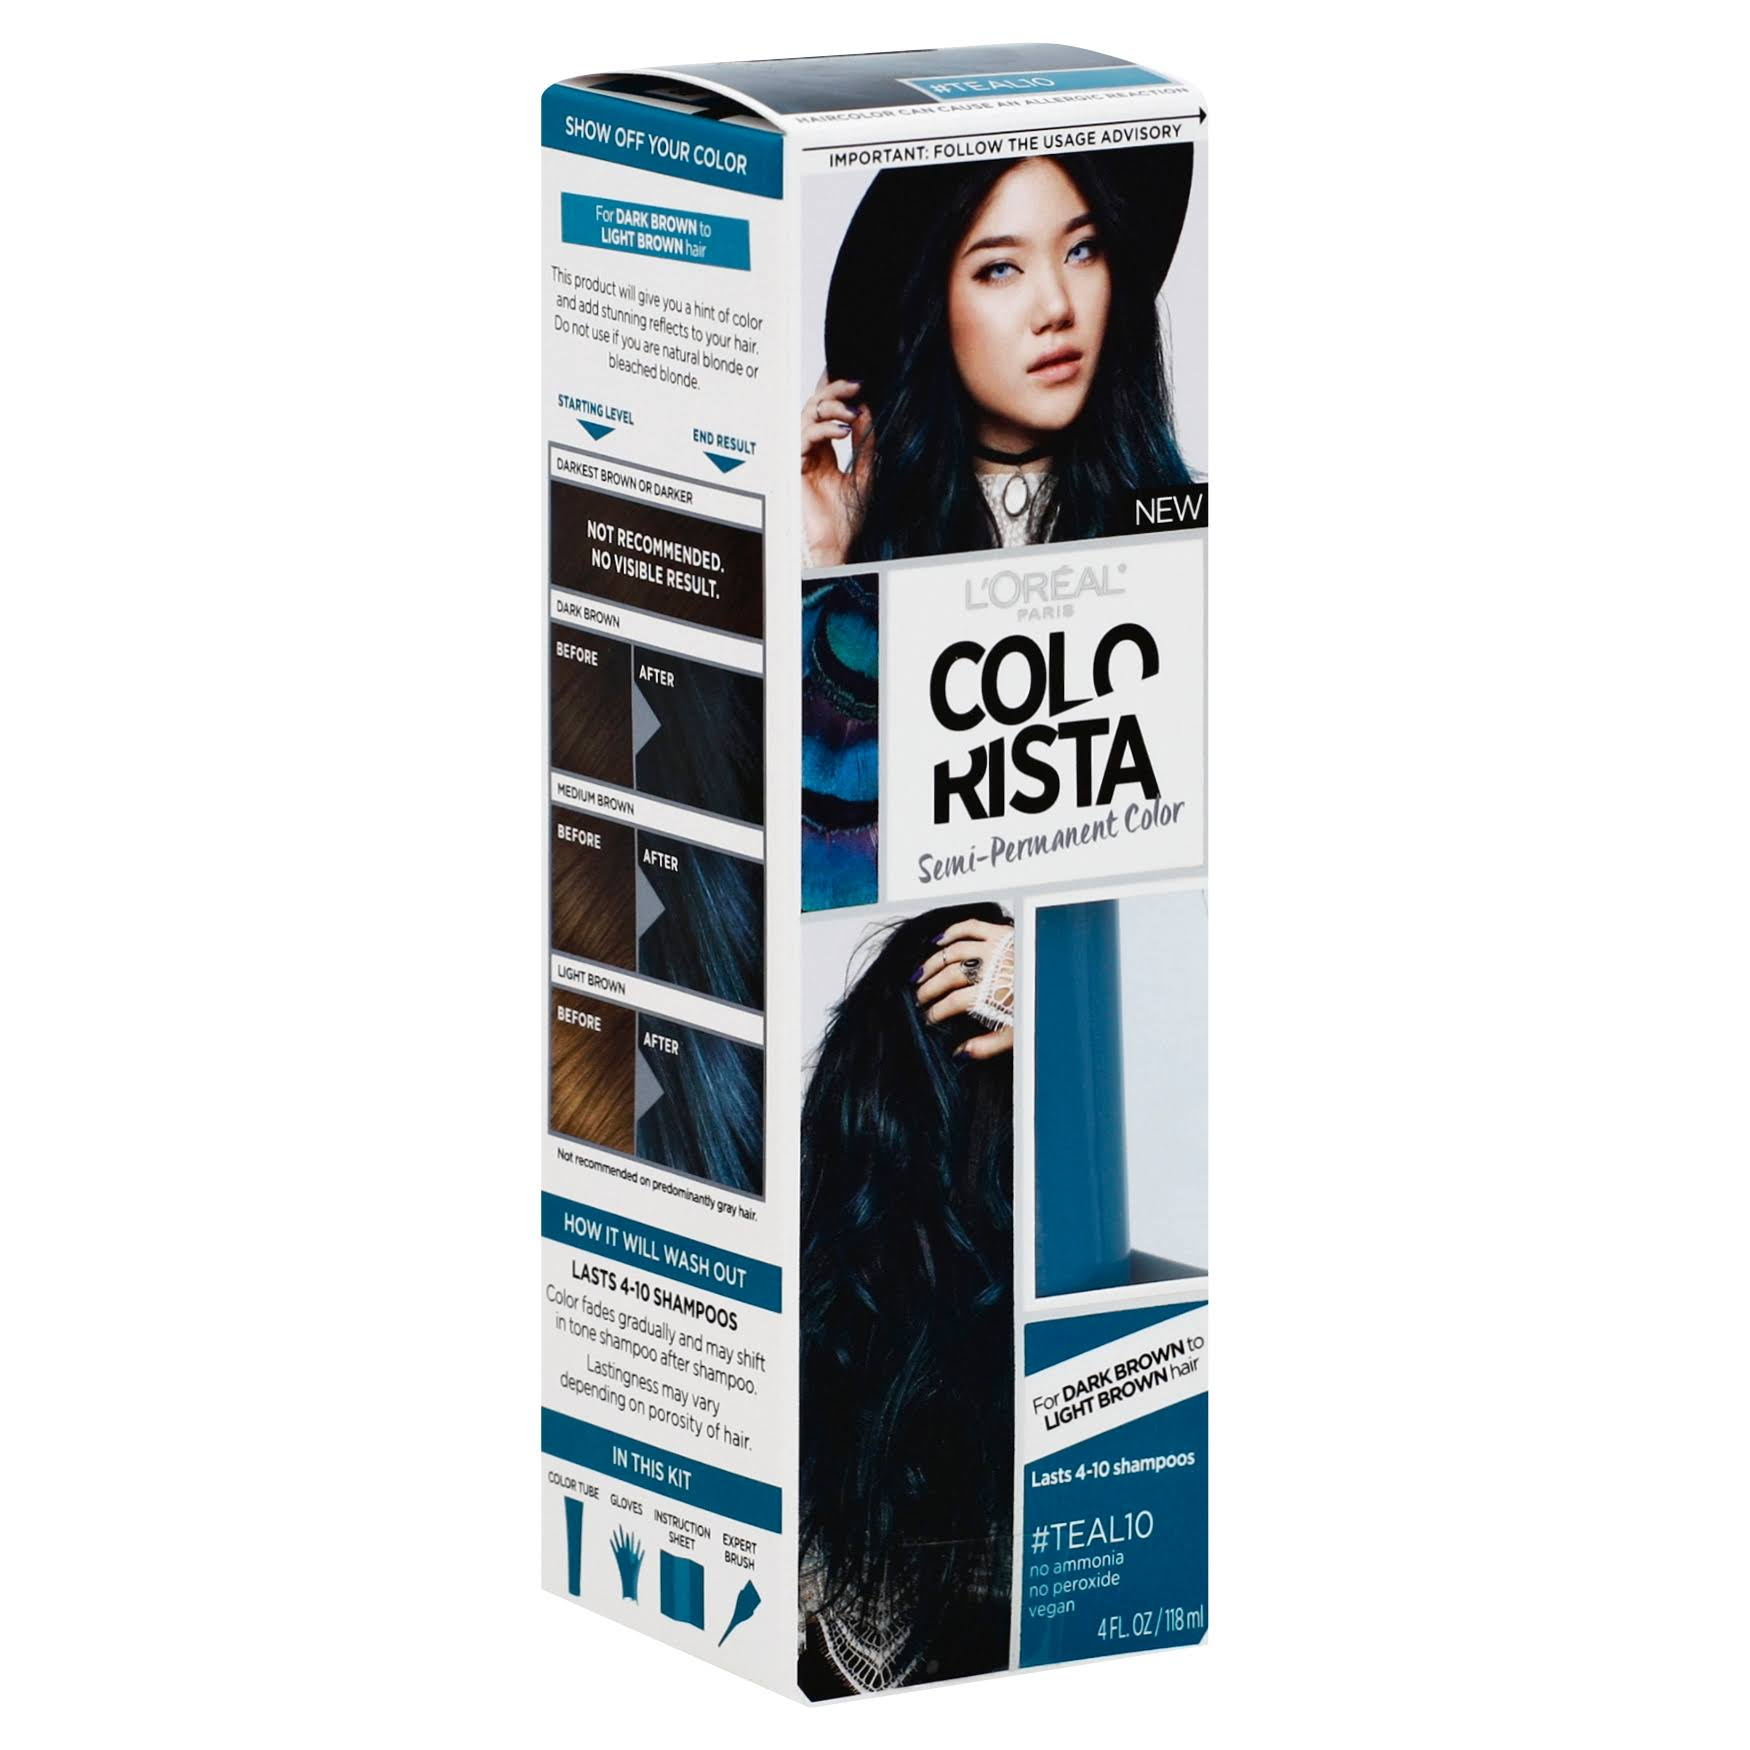 L'oreal Paris Colorista Semi Permanent Color - #Teal10, 4oz